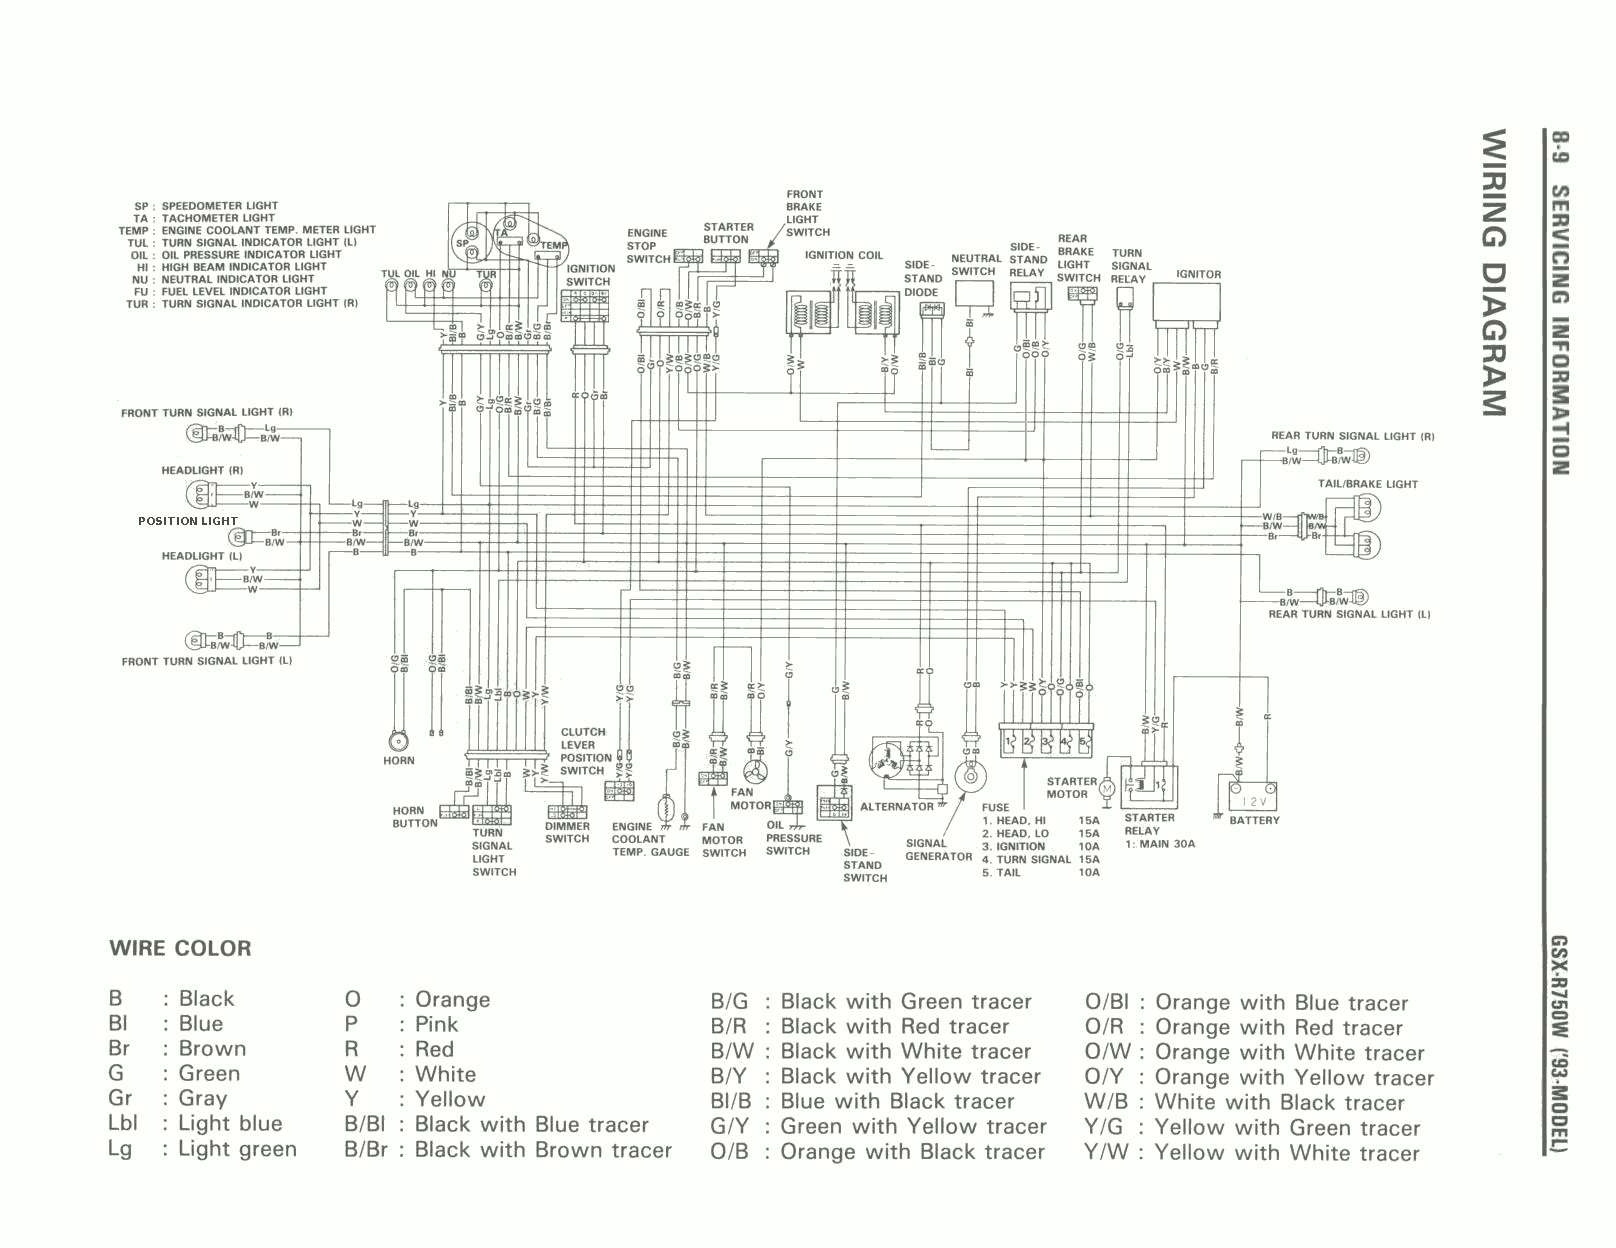 GSXR750 1993 wiring diagram?resize\\\\\\\\\\\\\\\\\\\\\\\\\\\\=665%2C514 2003 ttr 225 wiring diagram ttr 225 piston, yz 80 wiring diagram ttr 225 wiring diagram at bayanpartner.co